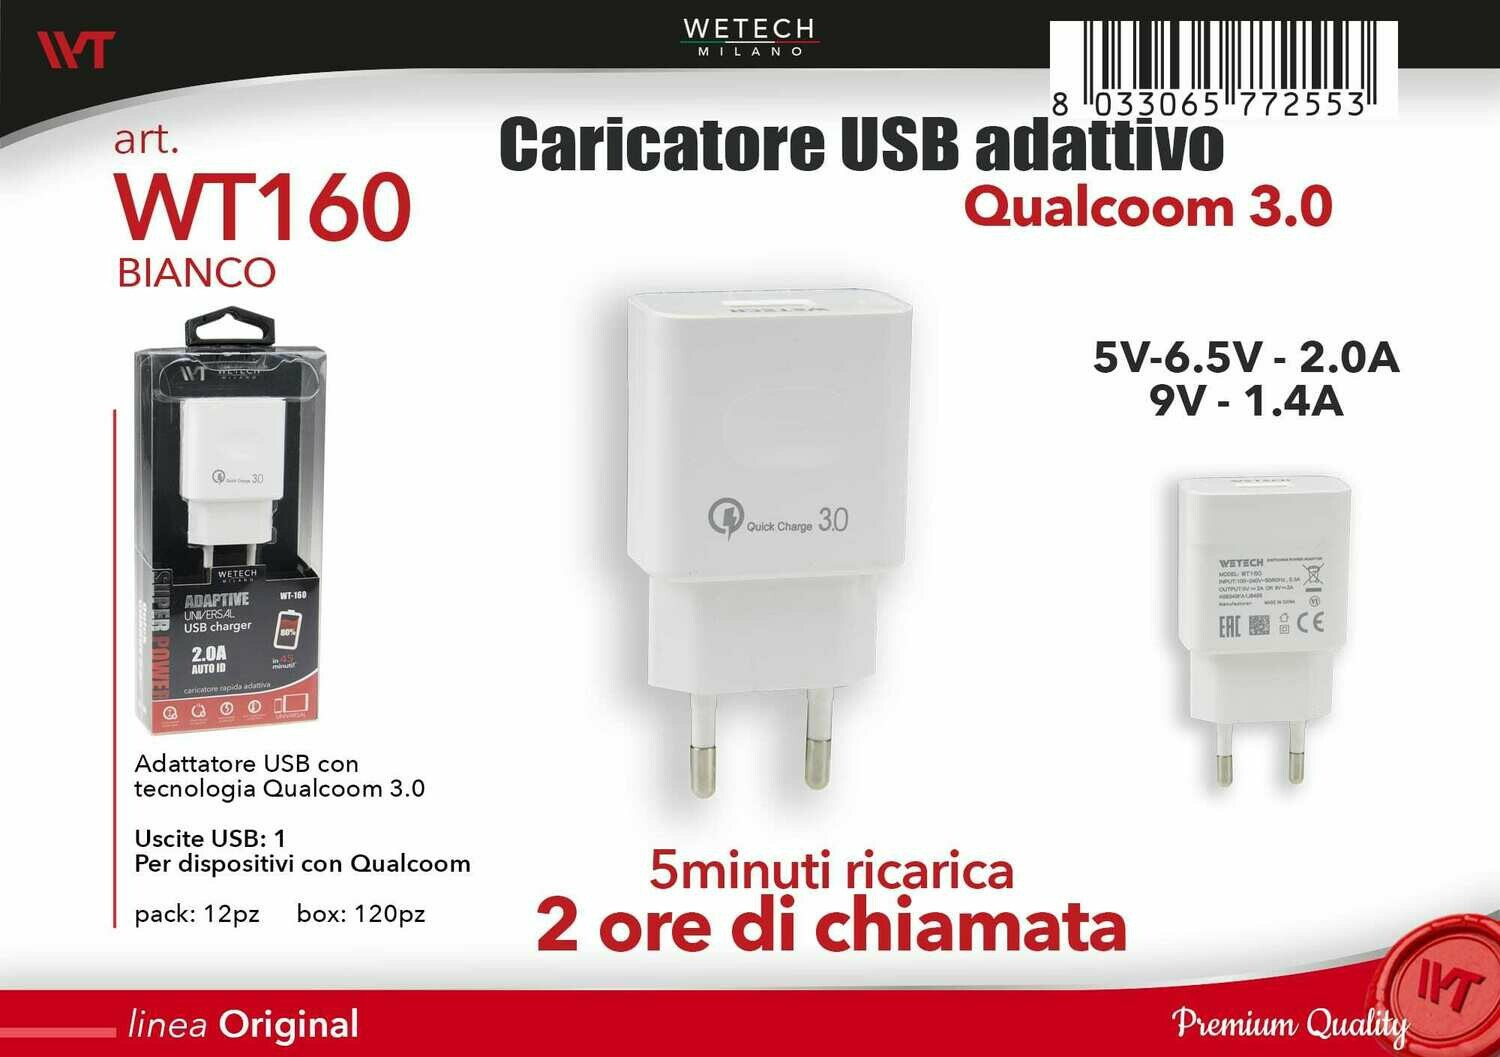 ADATTATORE USB QUICK CHARGE 3,0 2,0A 8033065772553 ADATTATORE USB QUICK CHARGE 3,0 2 0A